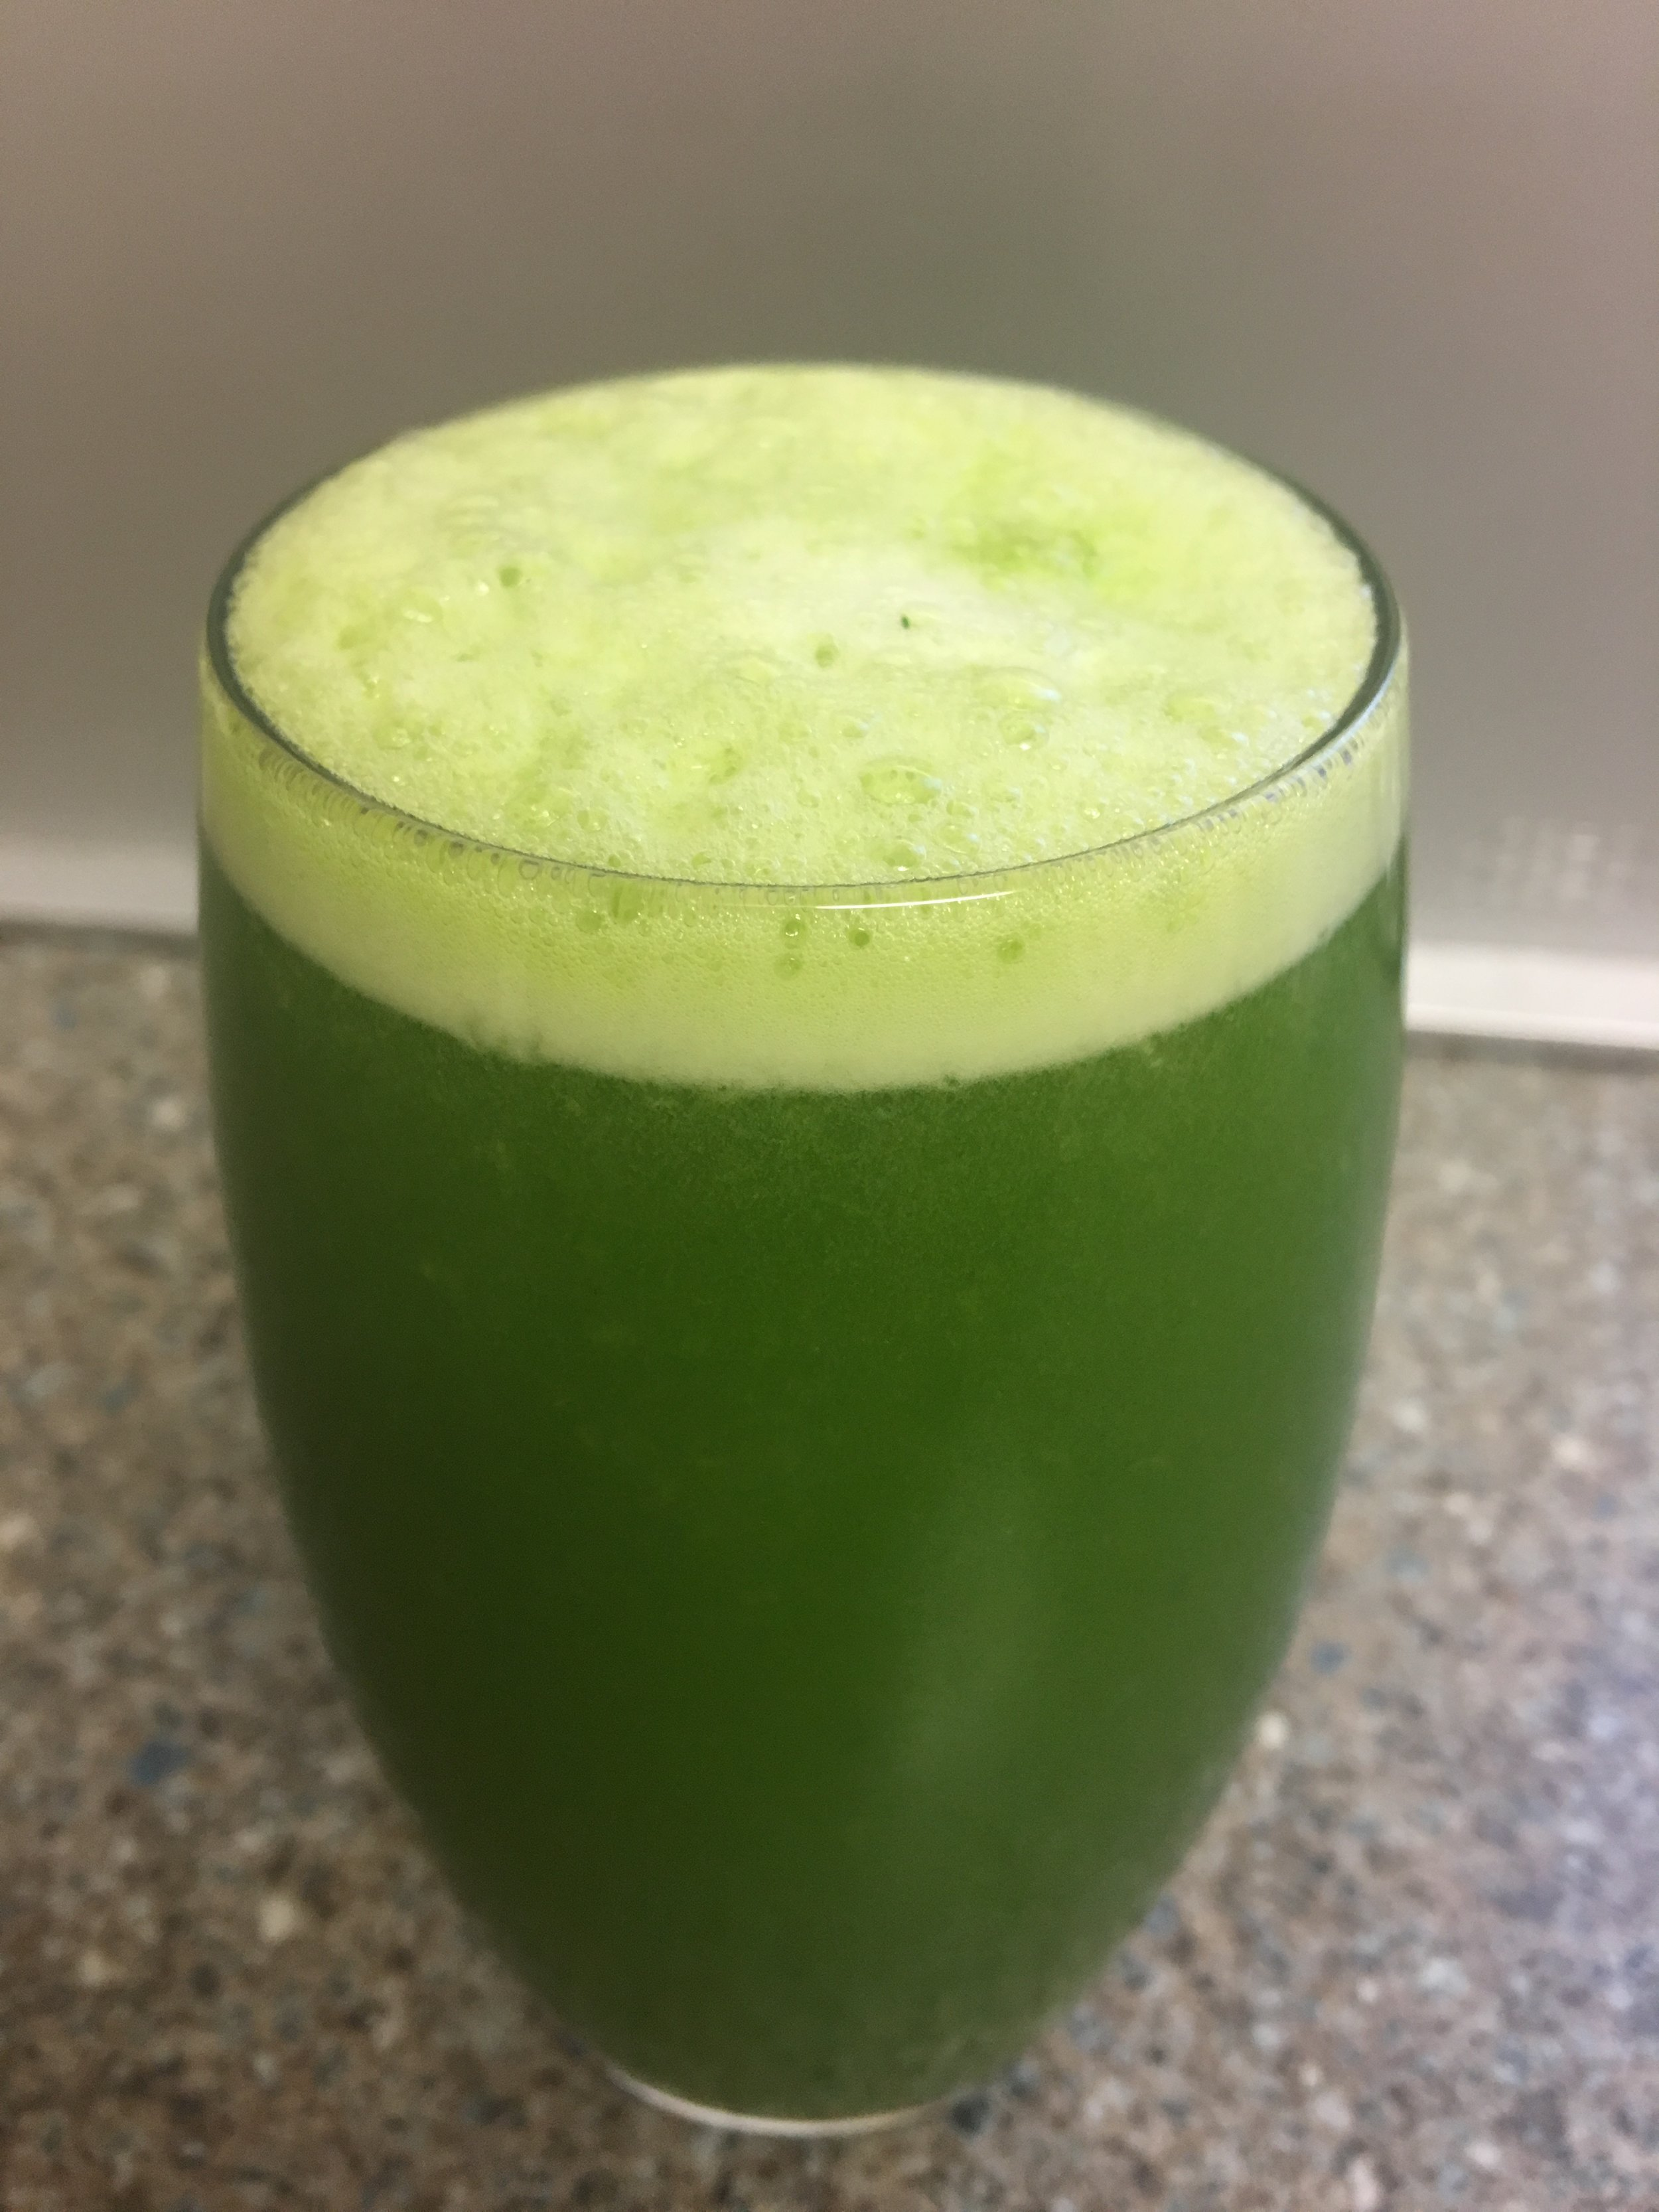 A green juice a day keeps the doctor away!